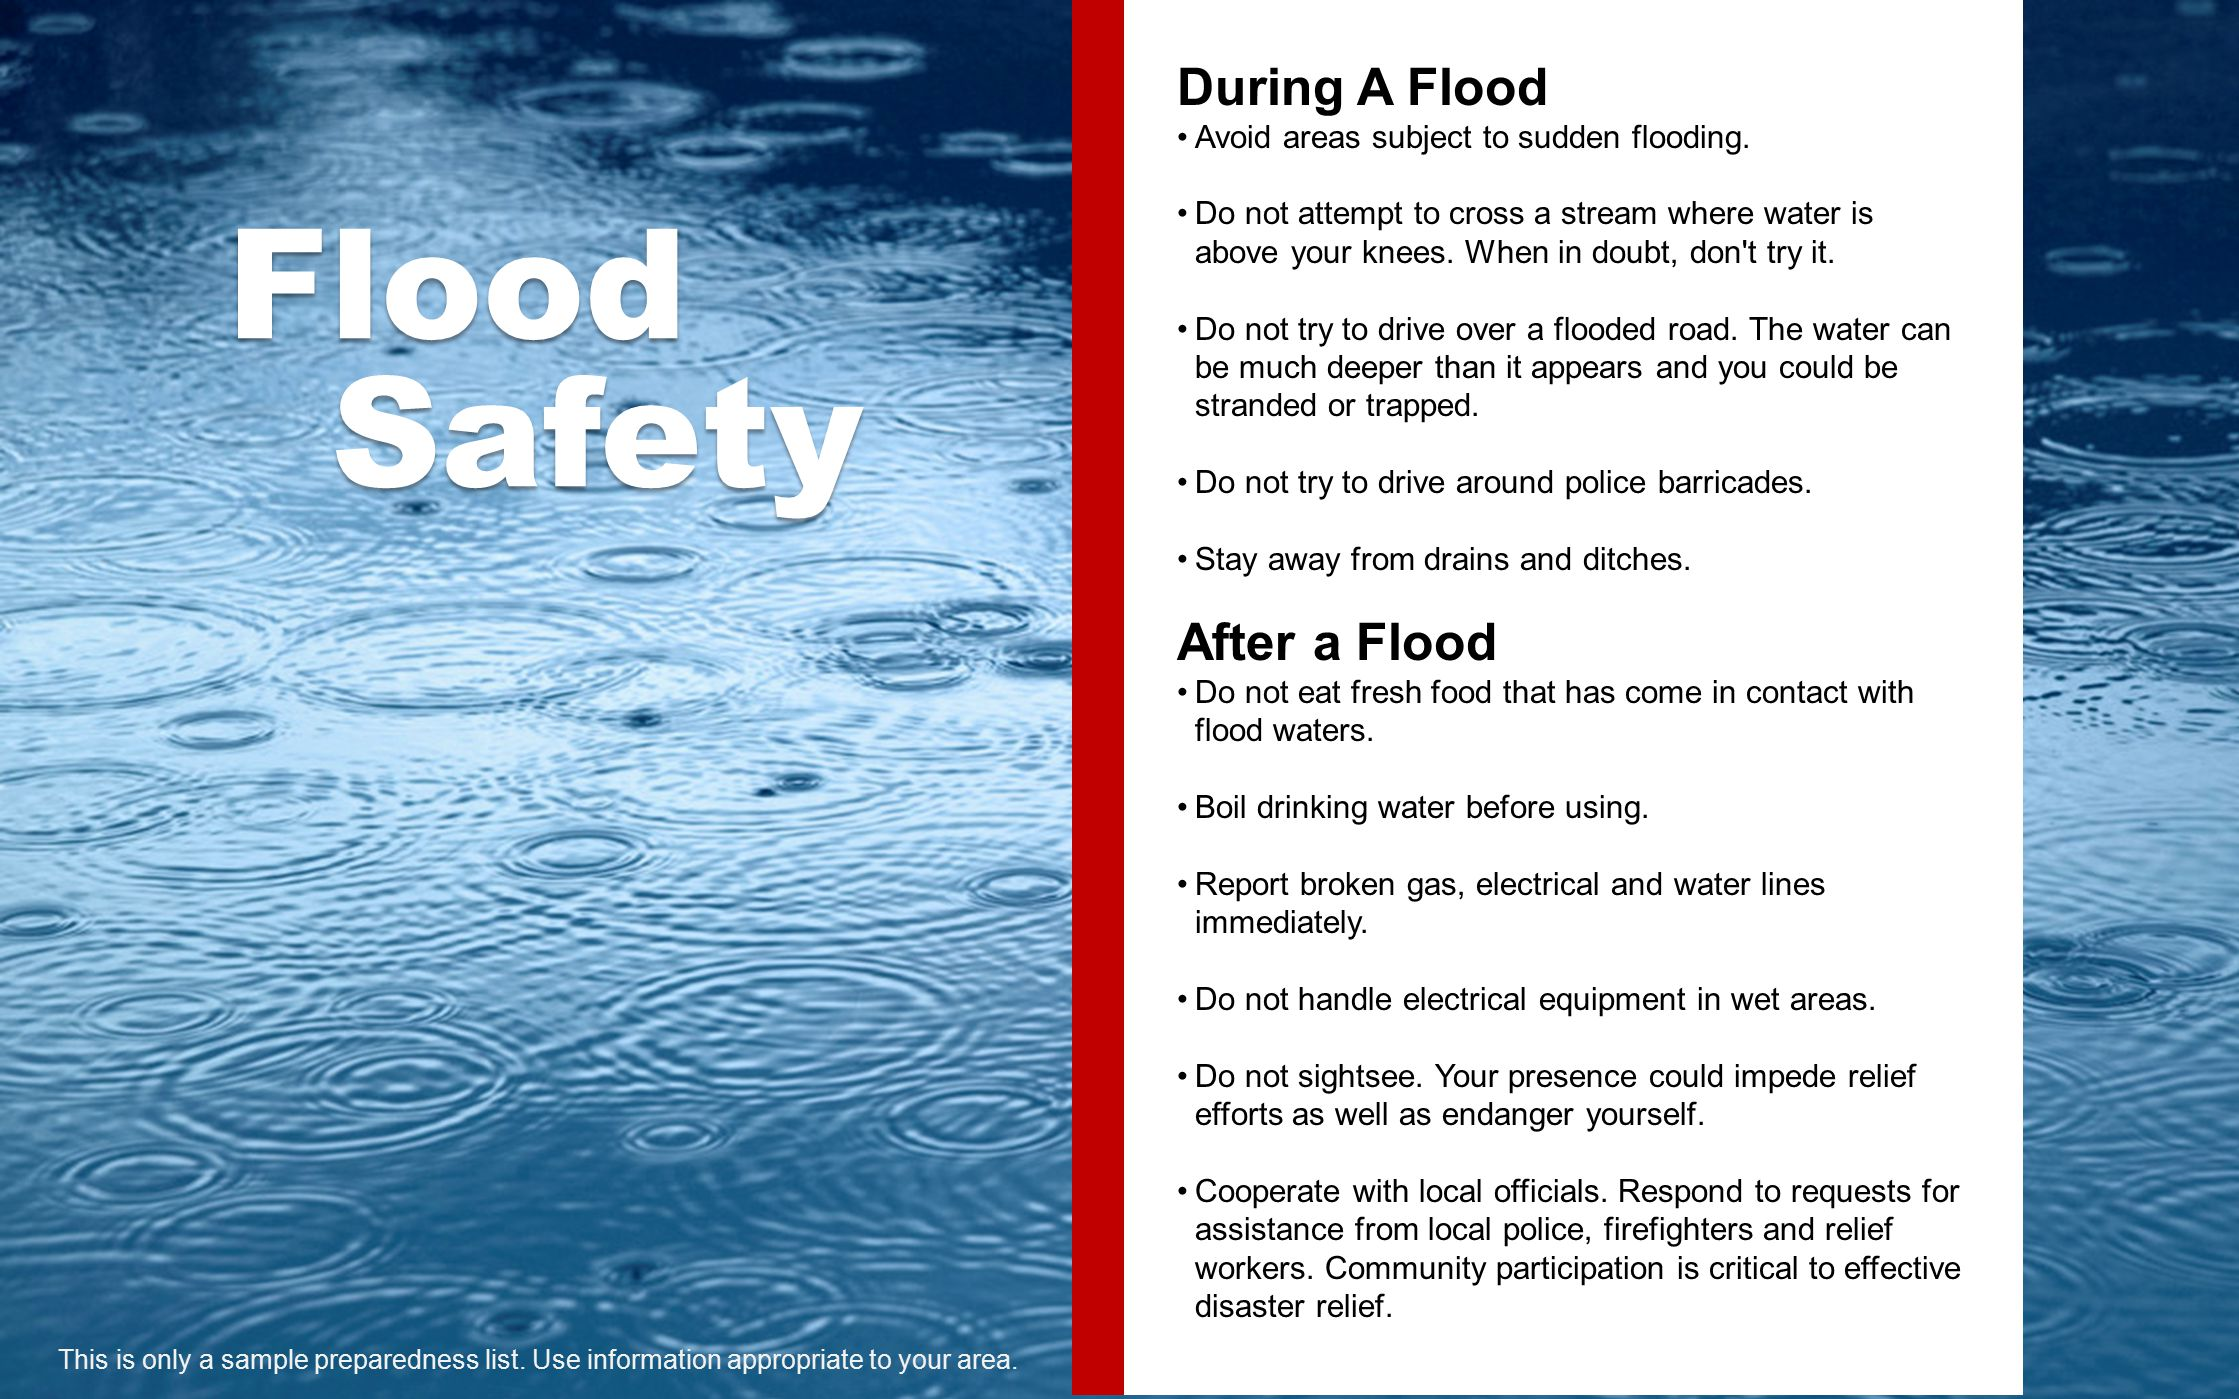 Flood Safety During A Flood Avoid areas subject to sudden flooding.